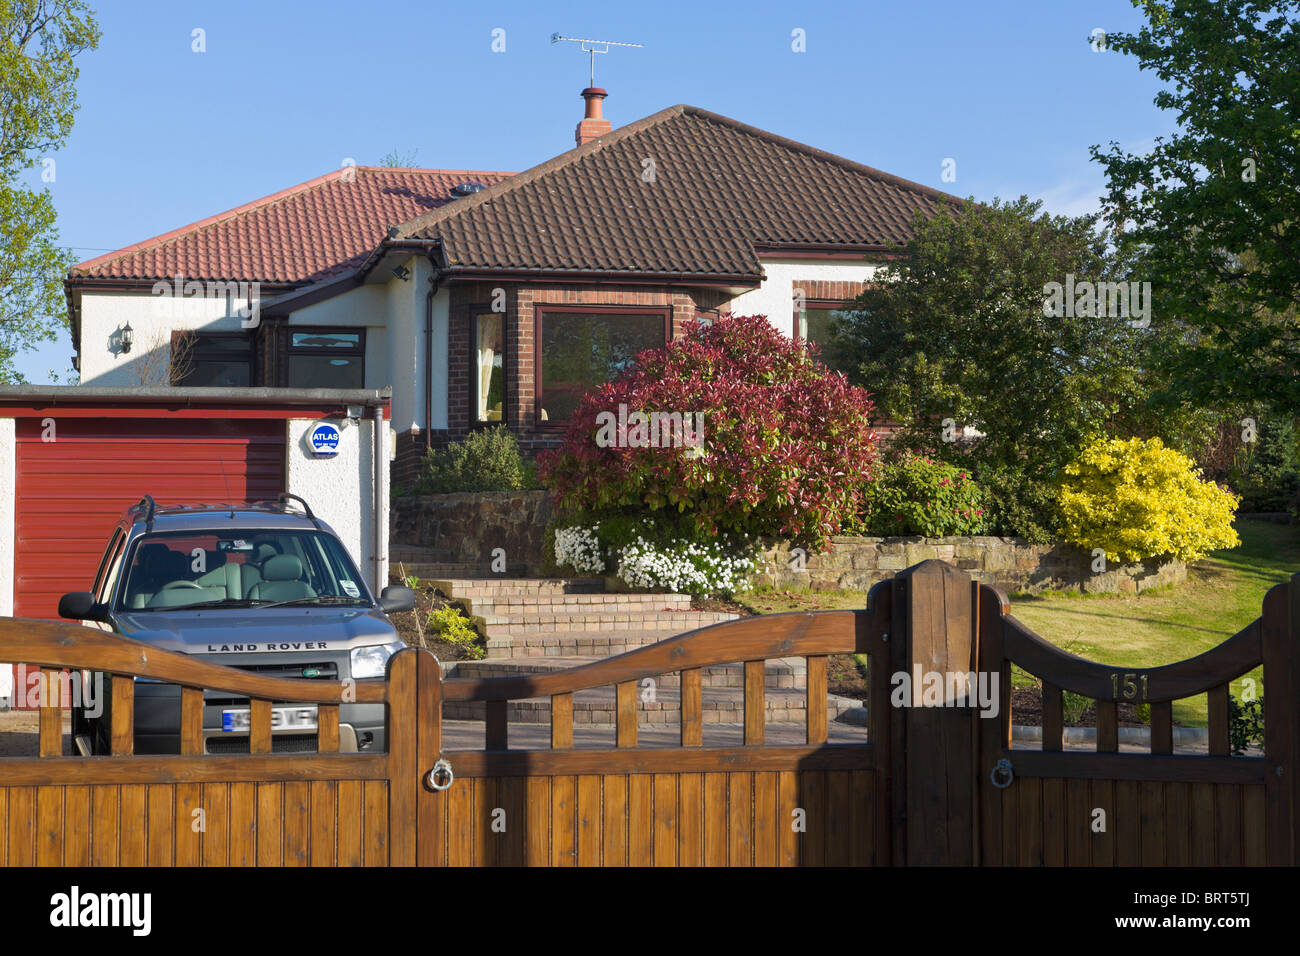 Bungalow front garden, gates and drive with car parked, Wirral, Merseyside, England - Stock Image